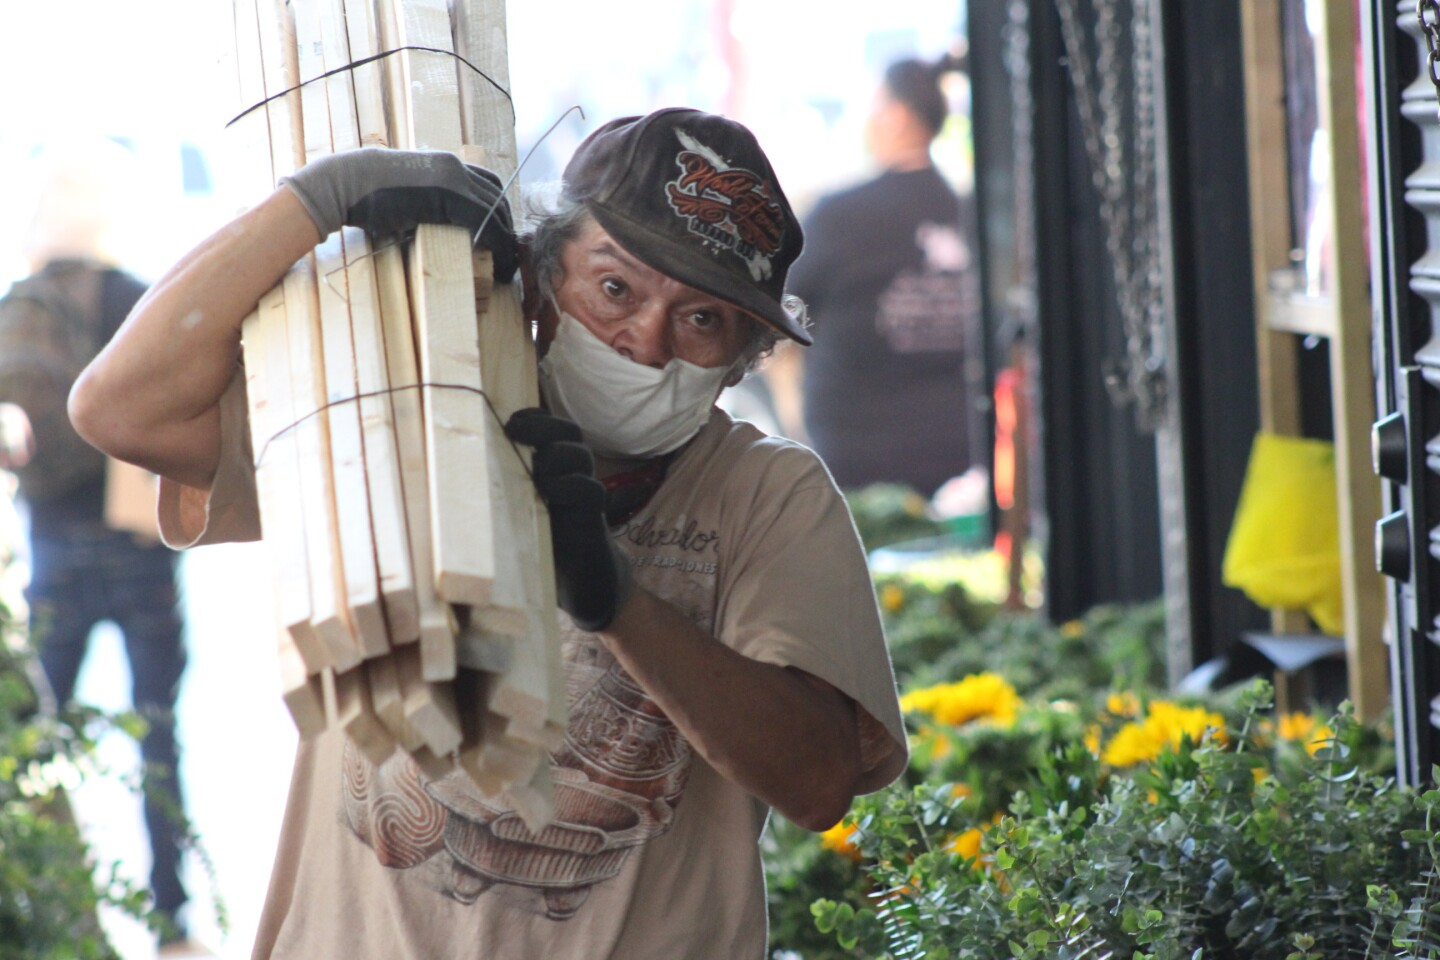 Man carries wood over his shoulder at Flower Market, as it reopened on May 8, 2020 | Karen Foshay